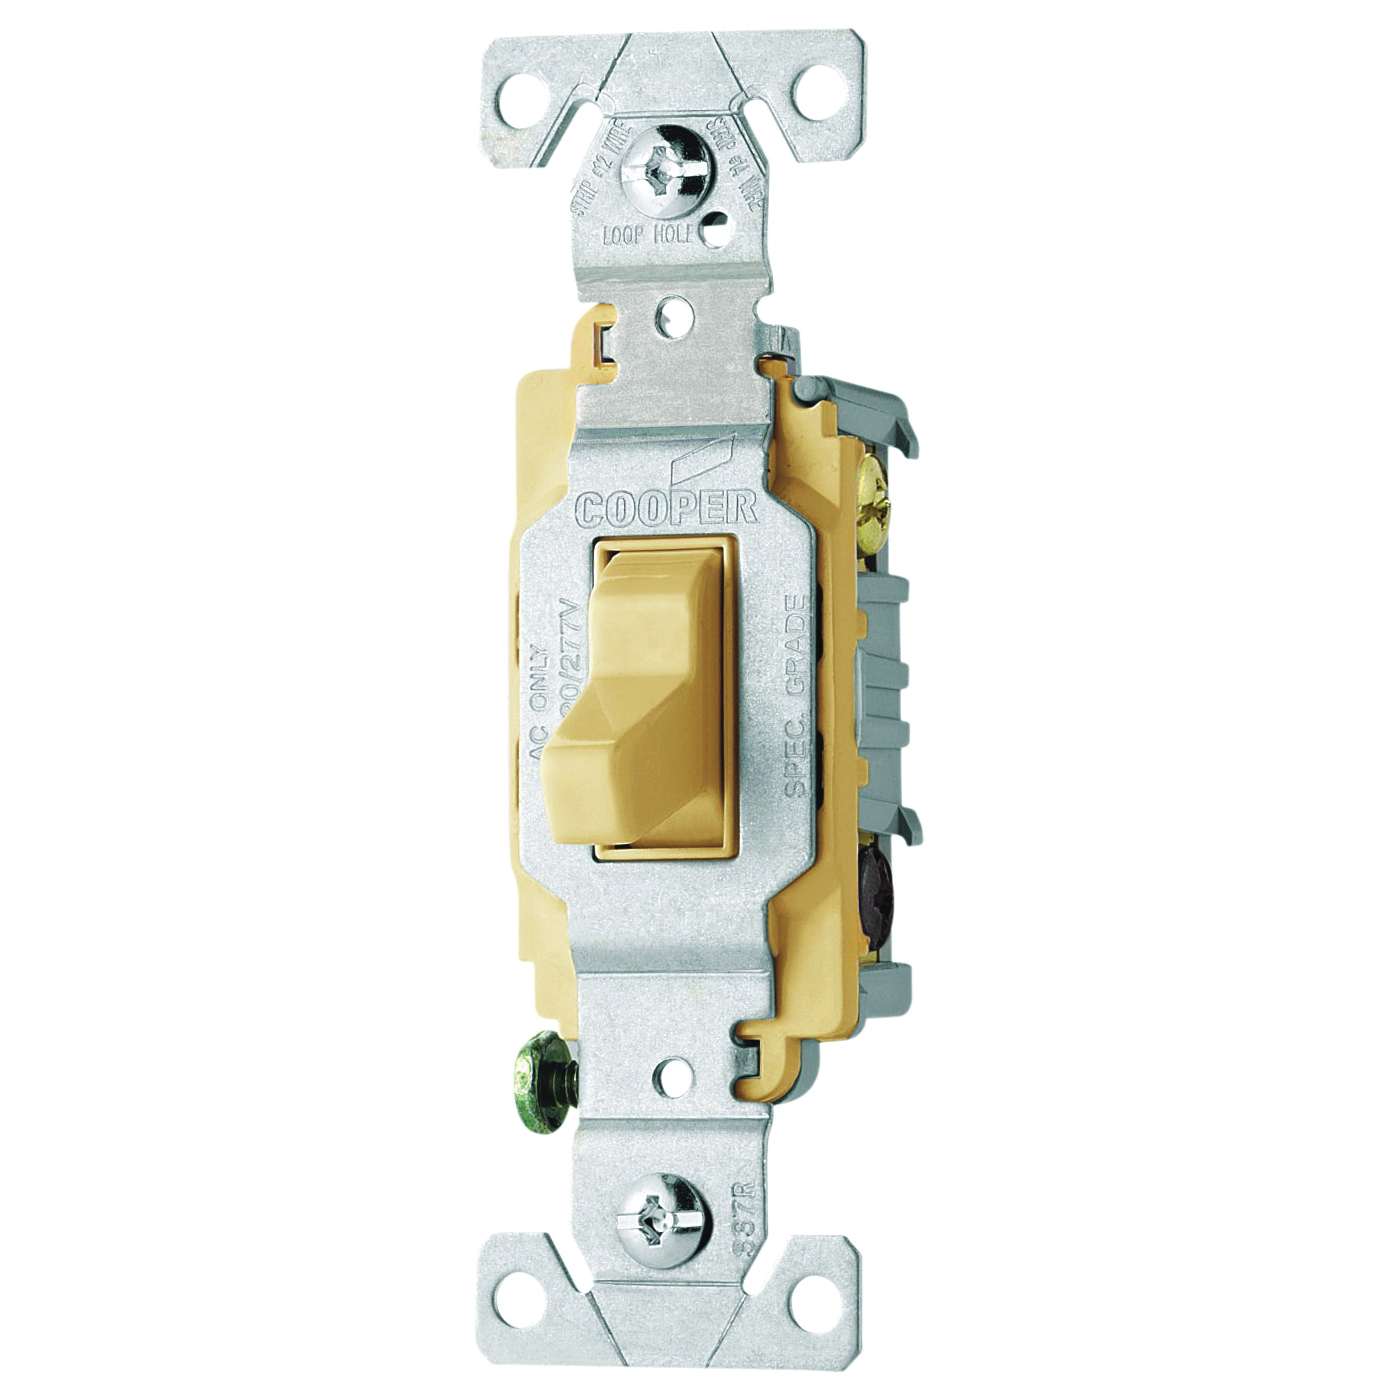 Picture of Arrow Hart CS315V Switch, 15 A, 120/277 V, 3-Way, Screw Terminal, PVC Housing Material, Ivory